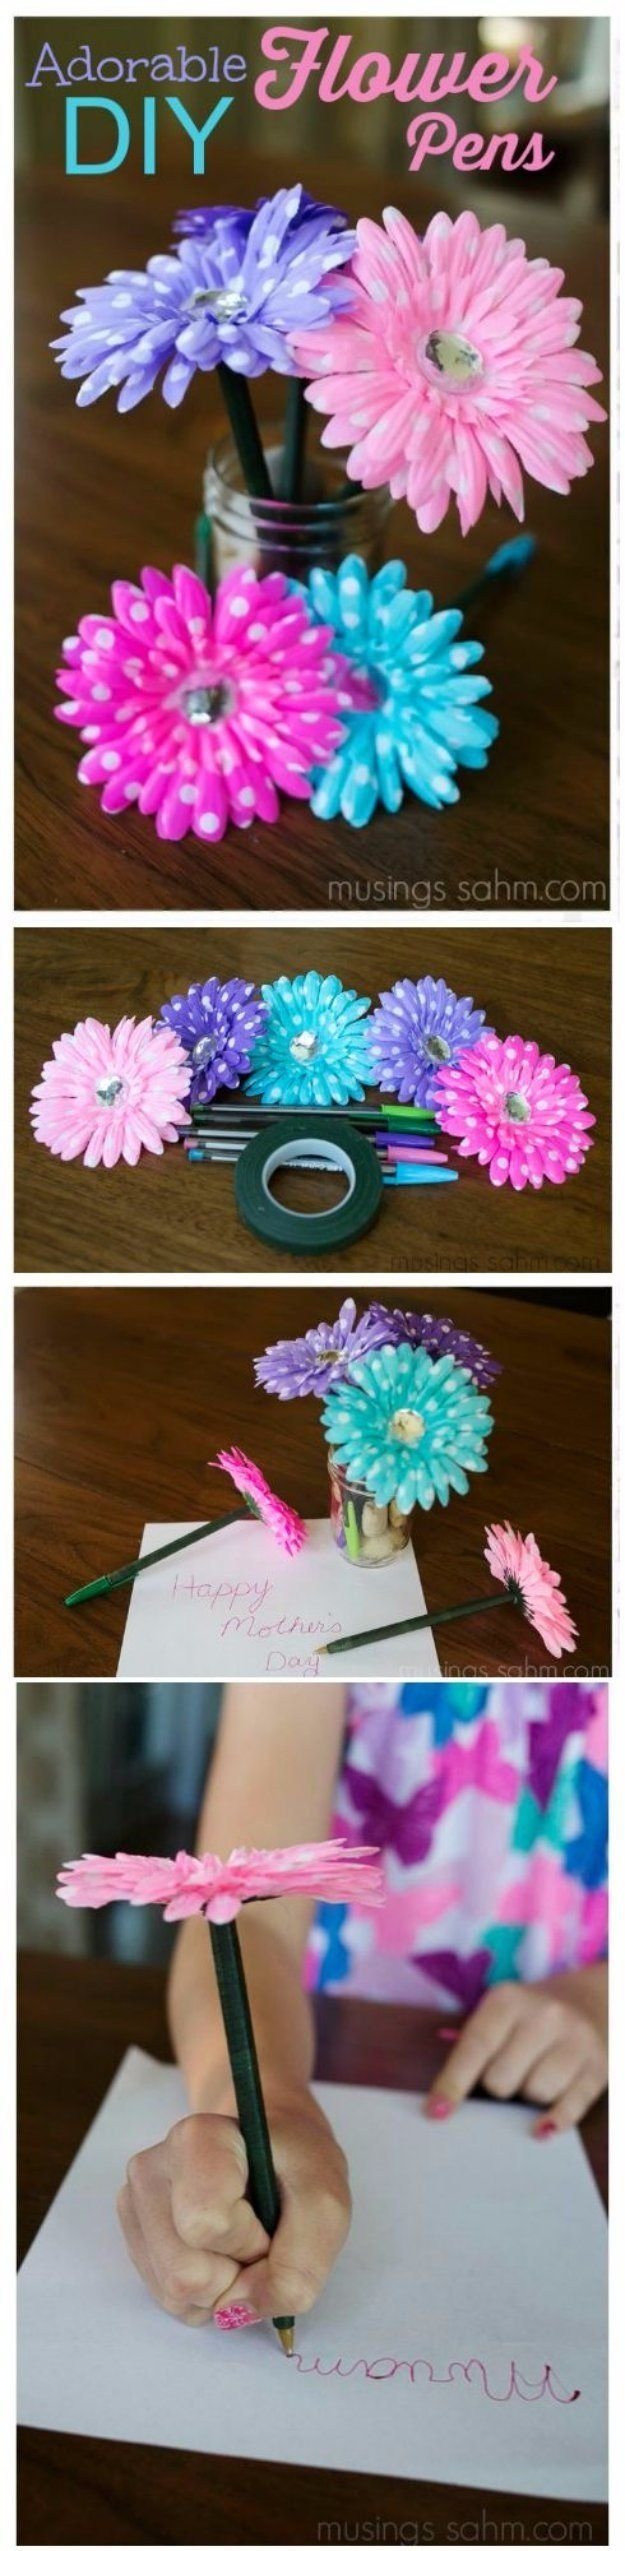 10 Perfect Ideas To Sell On Etsy crafting to sell archives crafting for ideas 2020